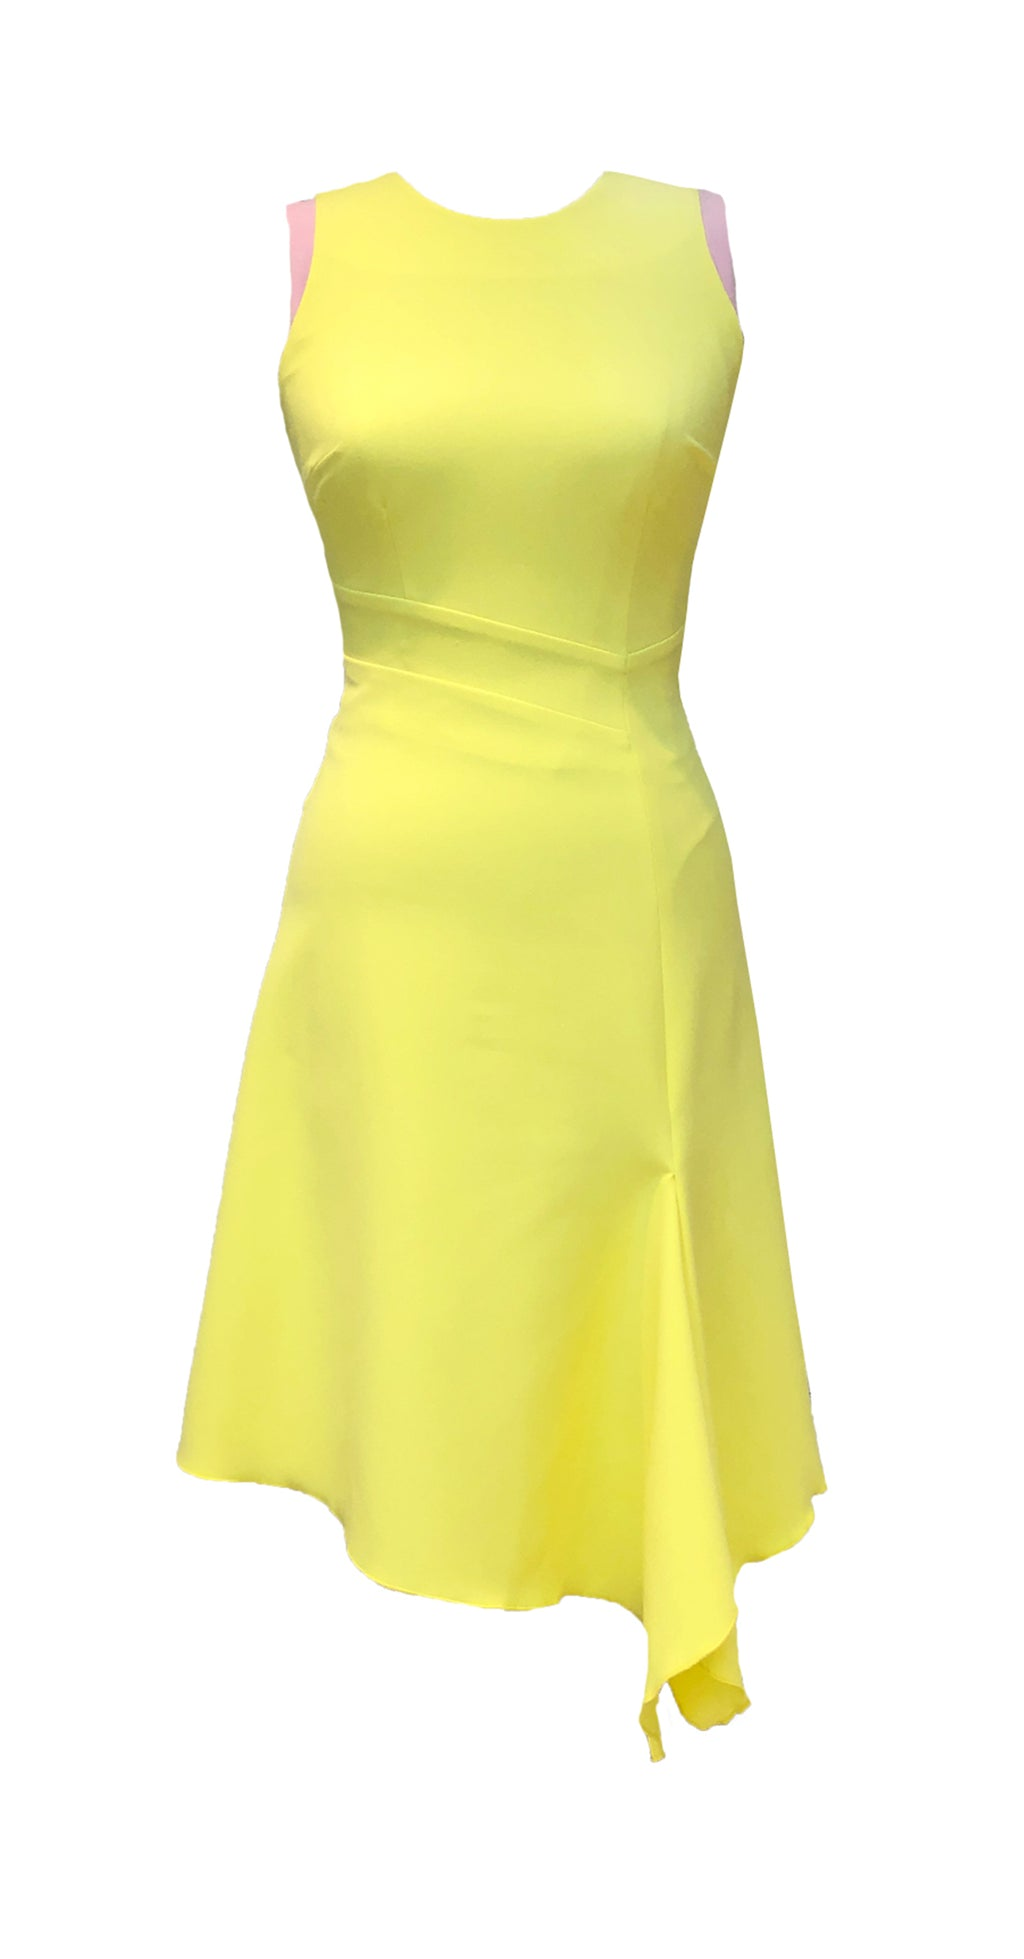 Adelle Dress DRC236 Yellow/Pink Contrast